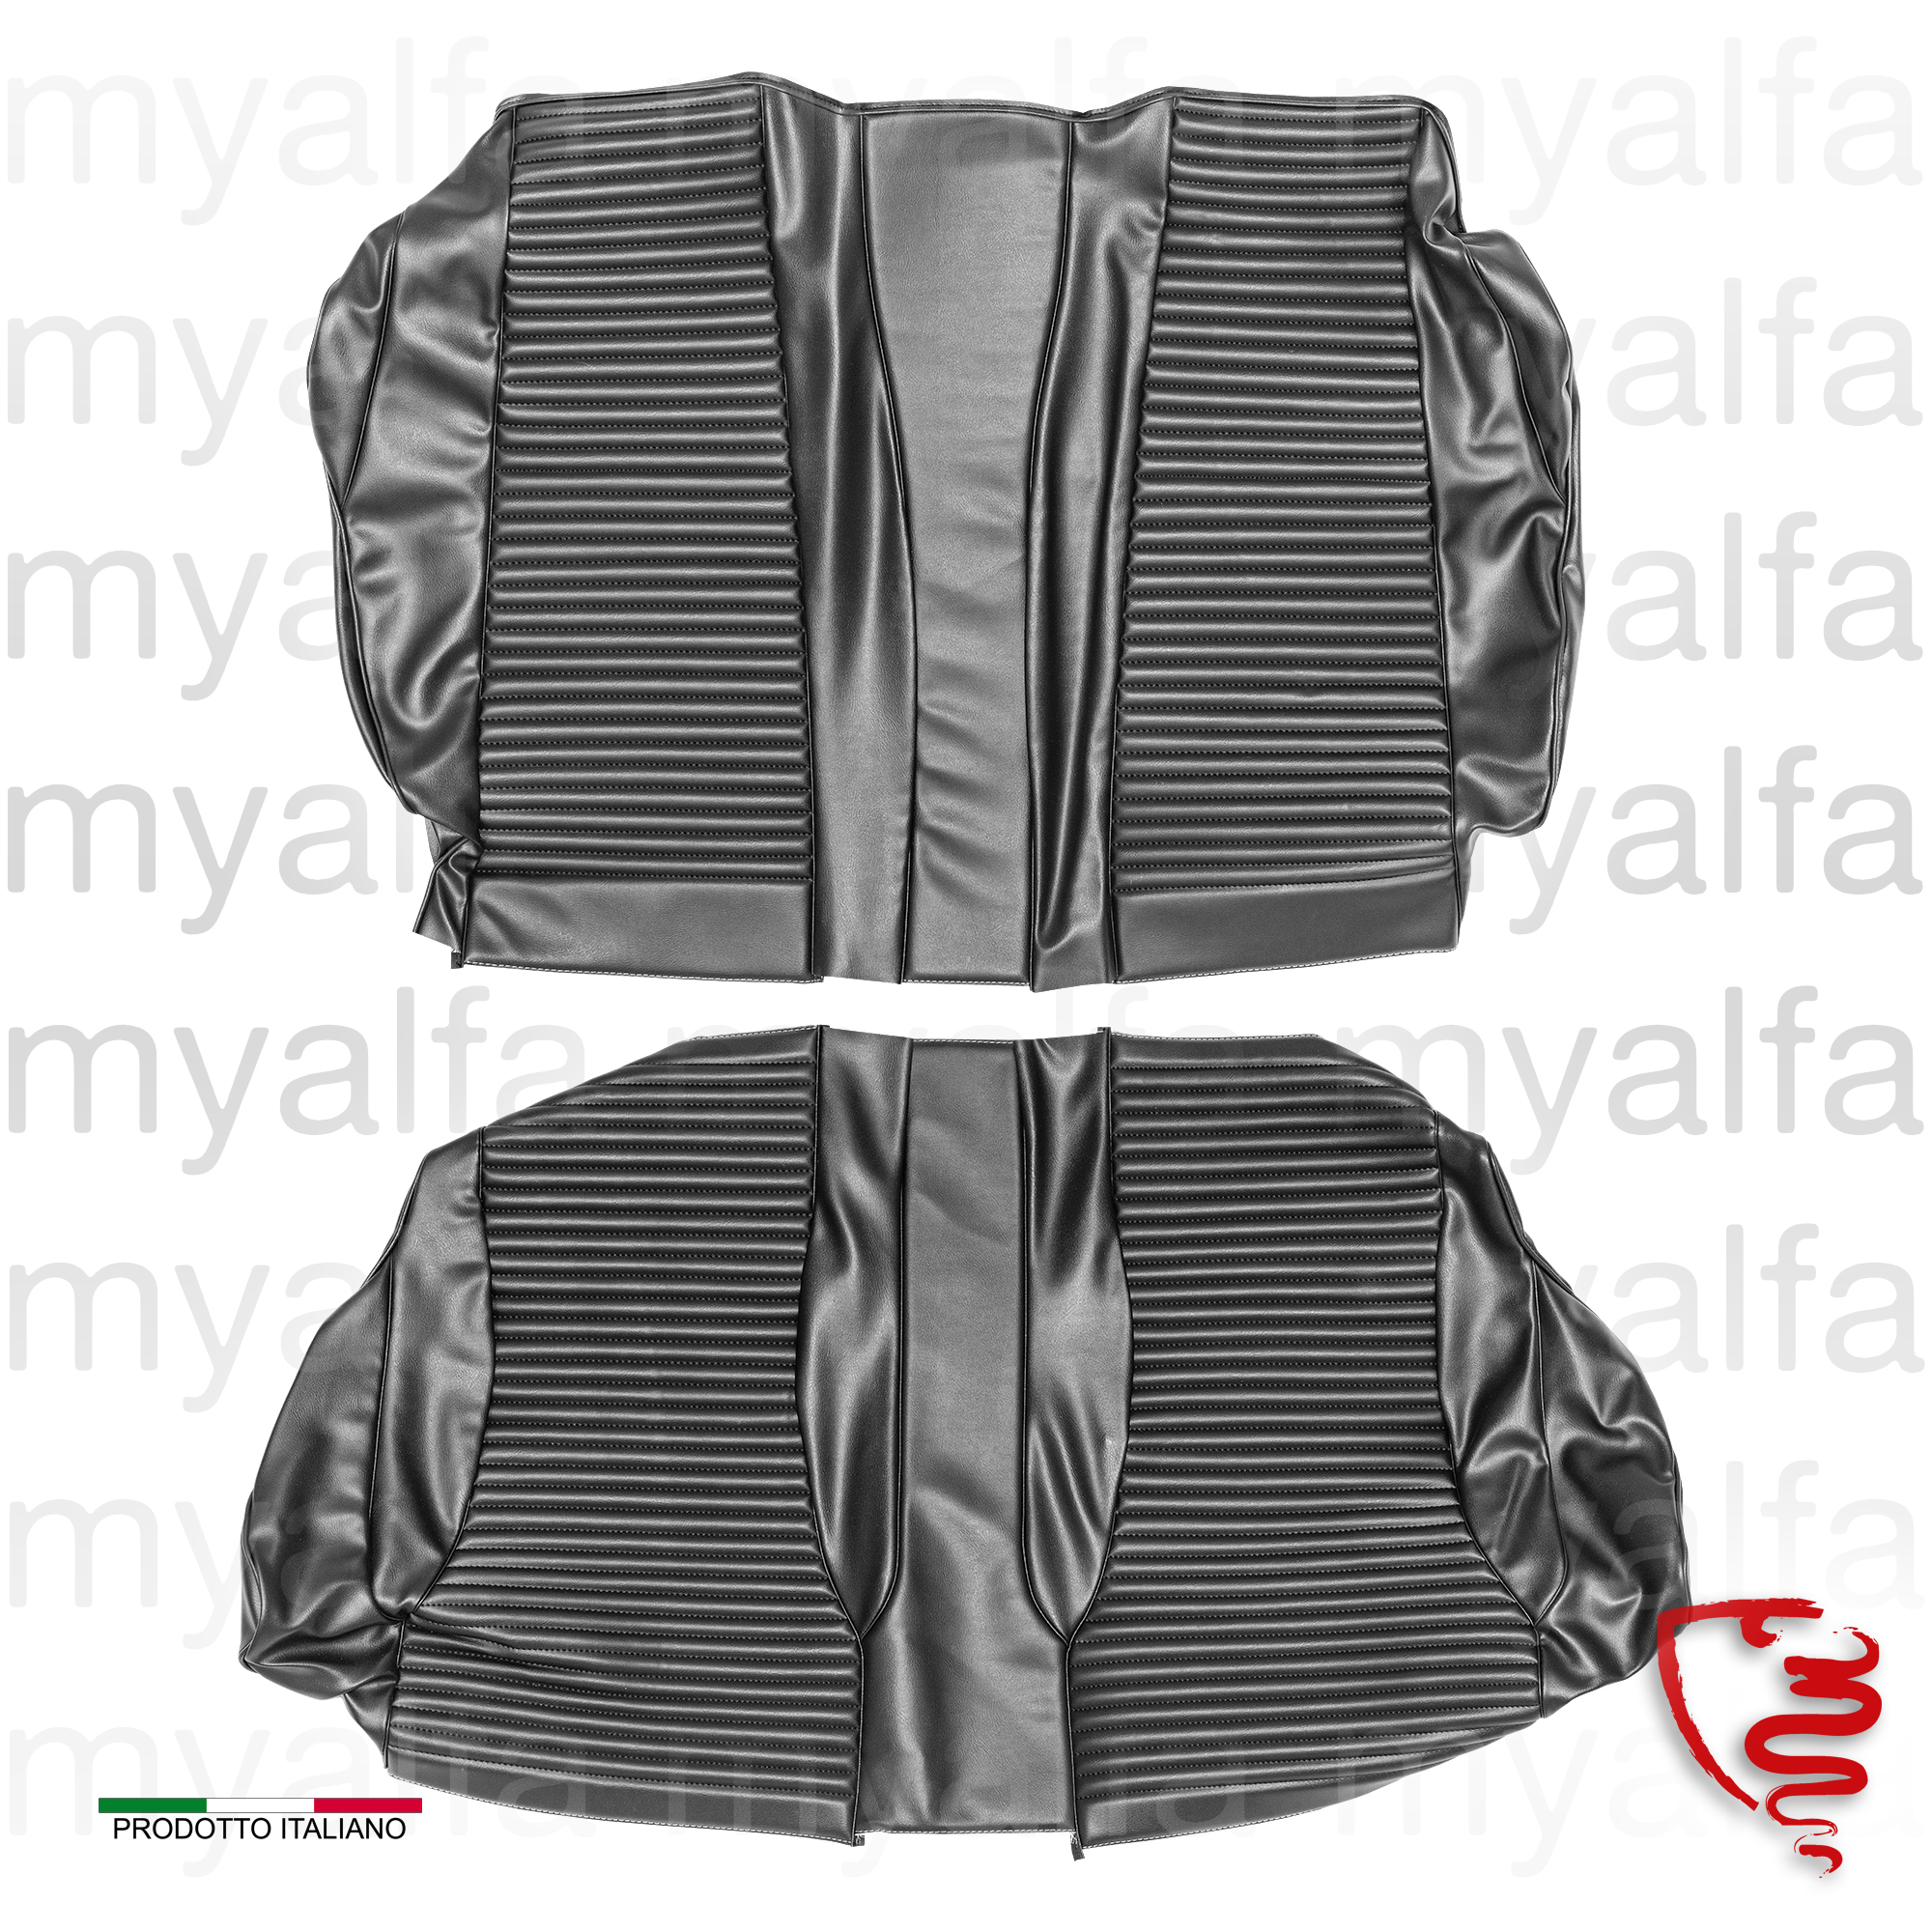 Cover the rear seats GTV 2000 - Black Scay for 105/115, Coupe, 2000, Interior, Seats, Seat covers